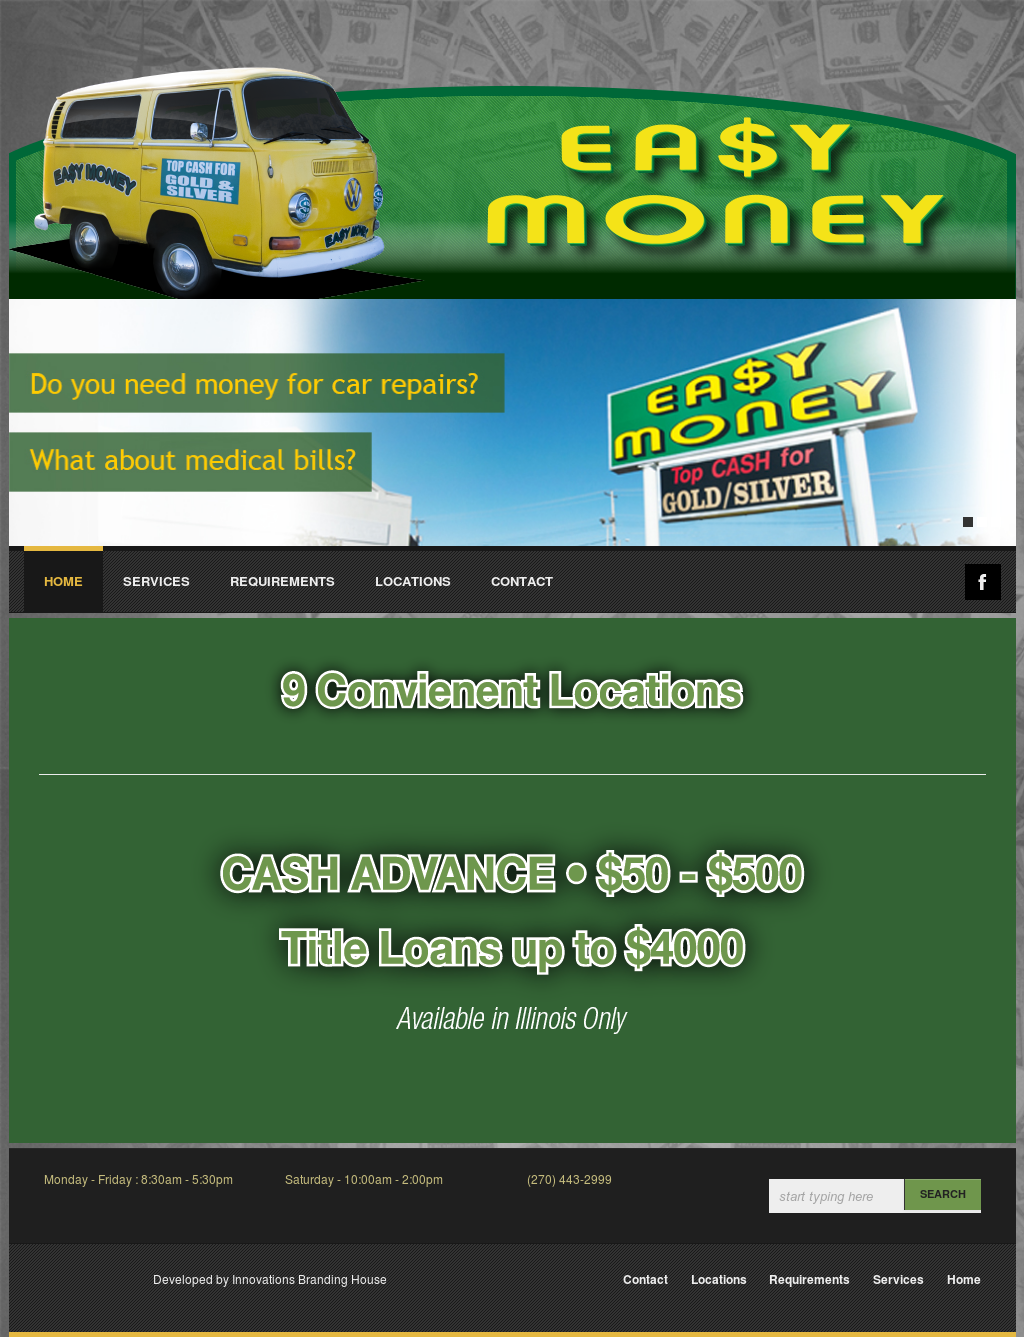 Easy Money Stores Competitors, Revenue and Employees - Owler